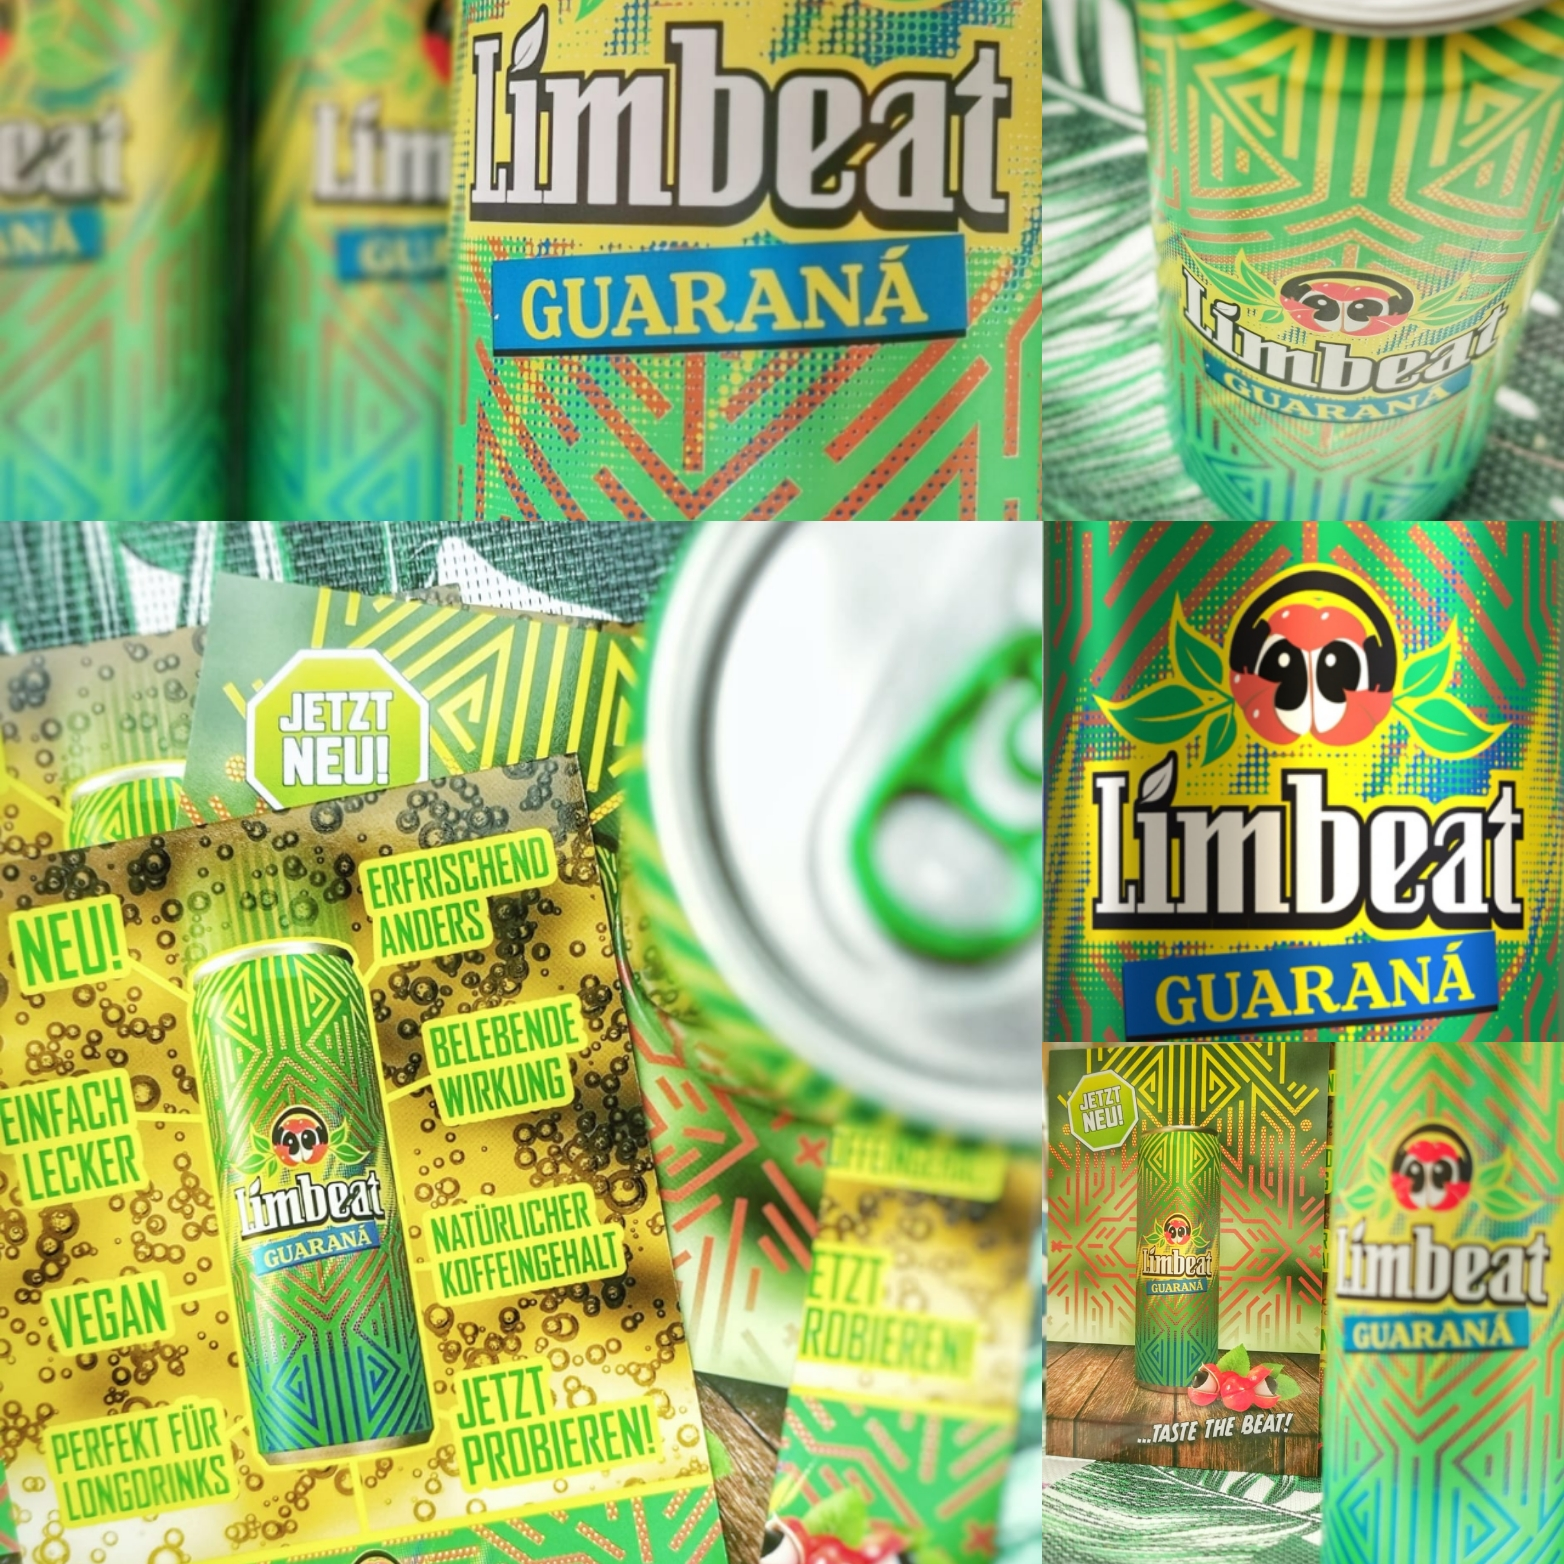 Limbeat Guarana Energydrink